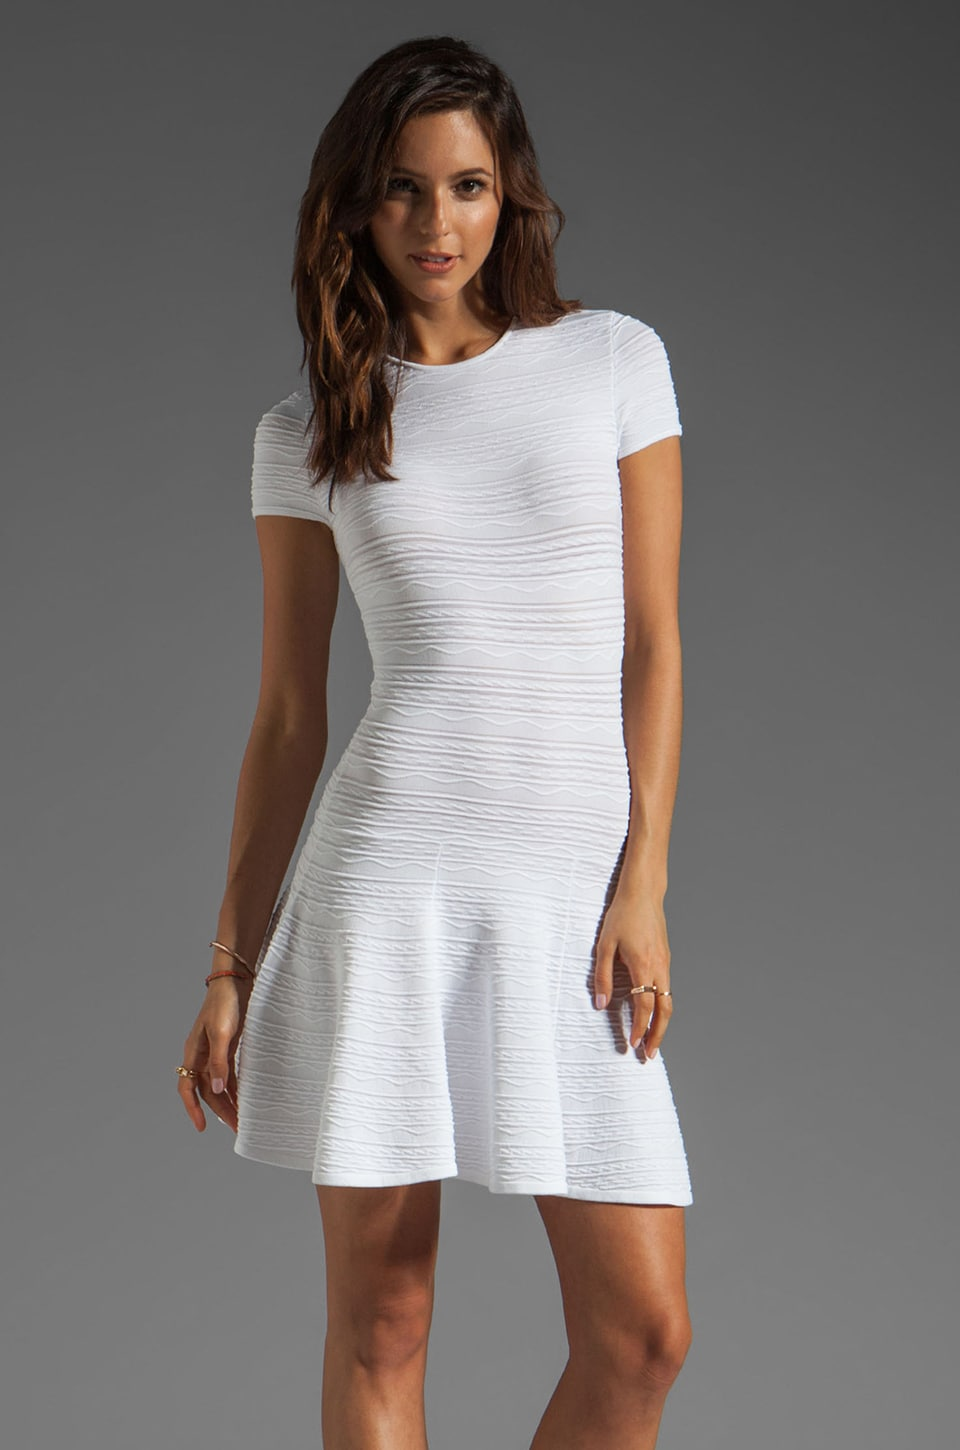 Torn by Ronny Kobo Vivienne Dress in White